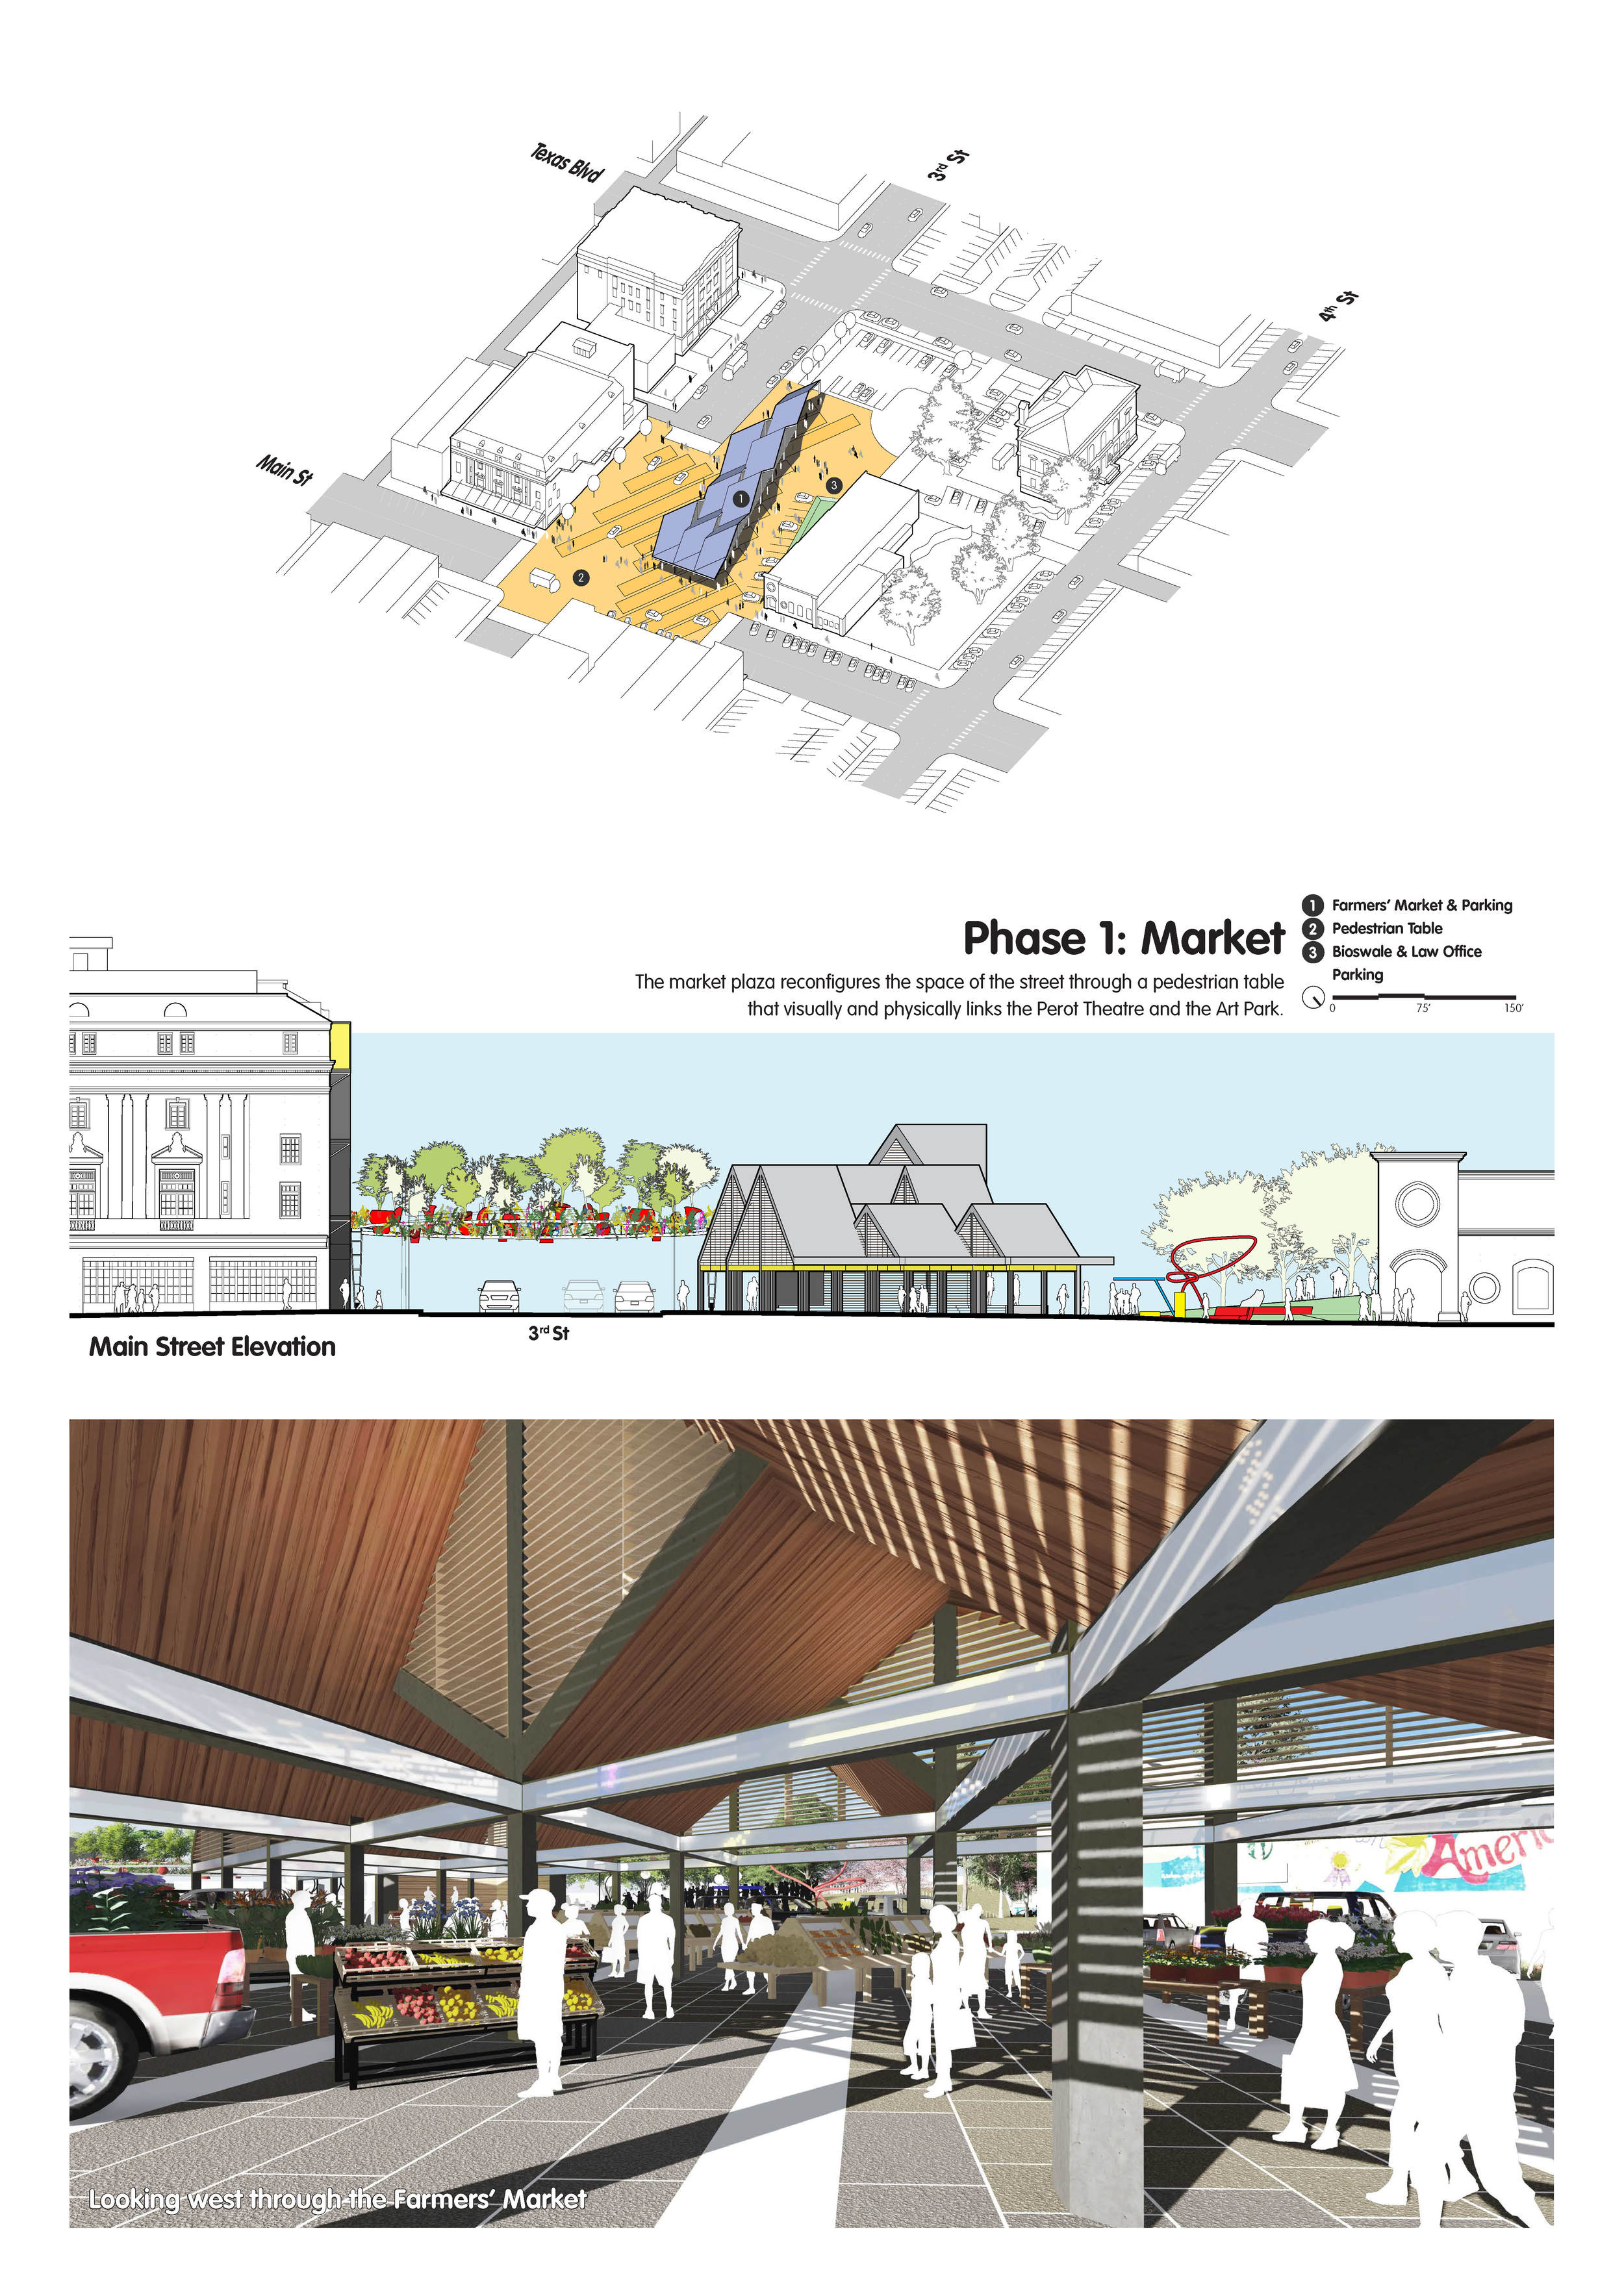 Texarkana Art Park and Perot Theatre Revitalization - optimized_Page_05.jpg